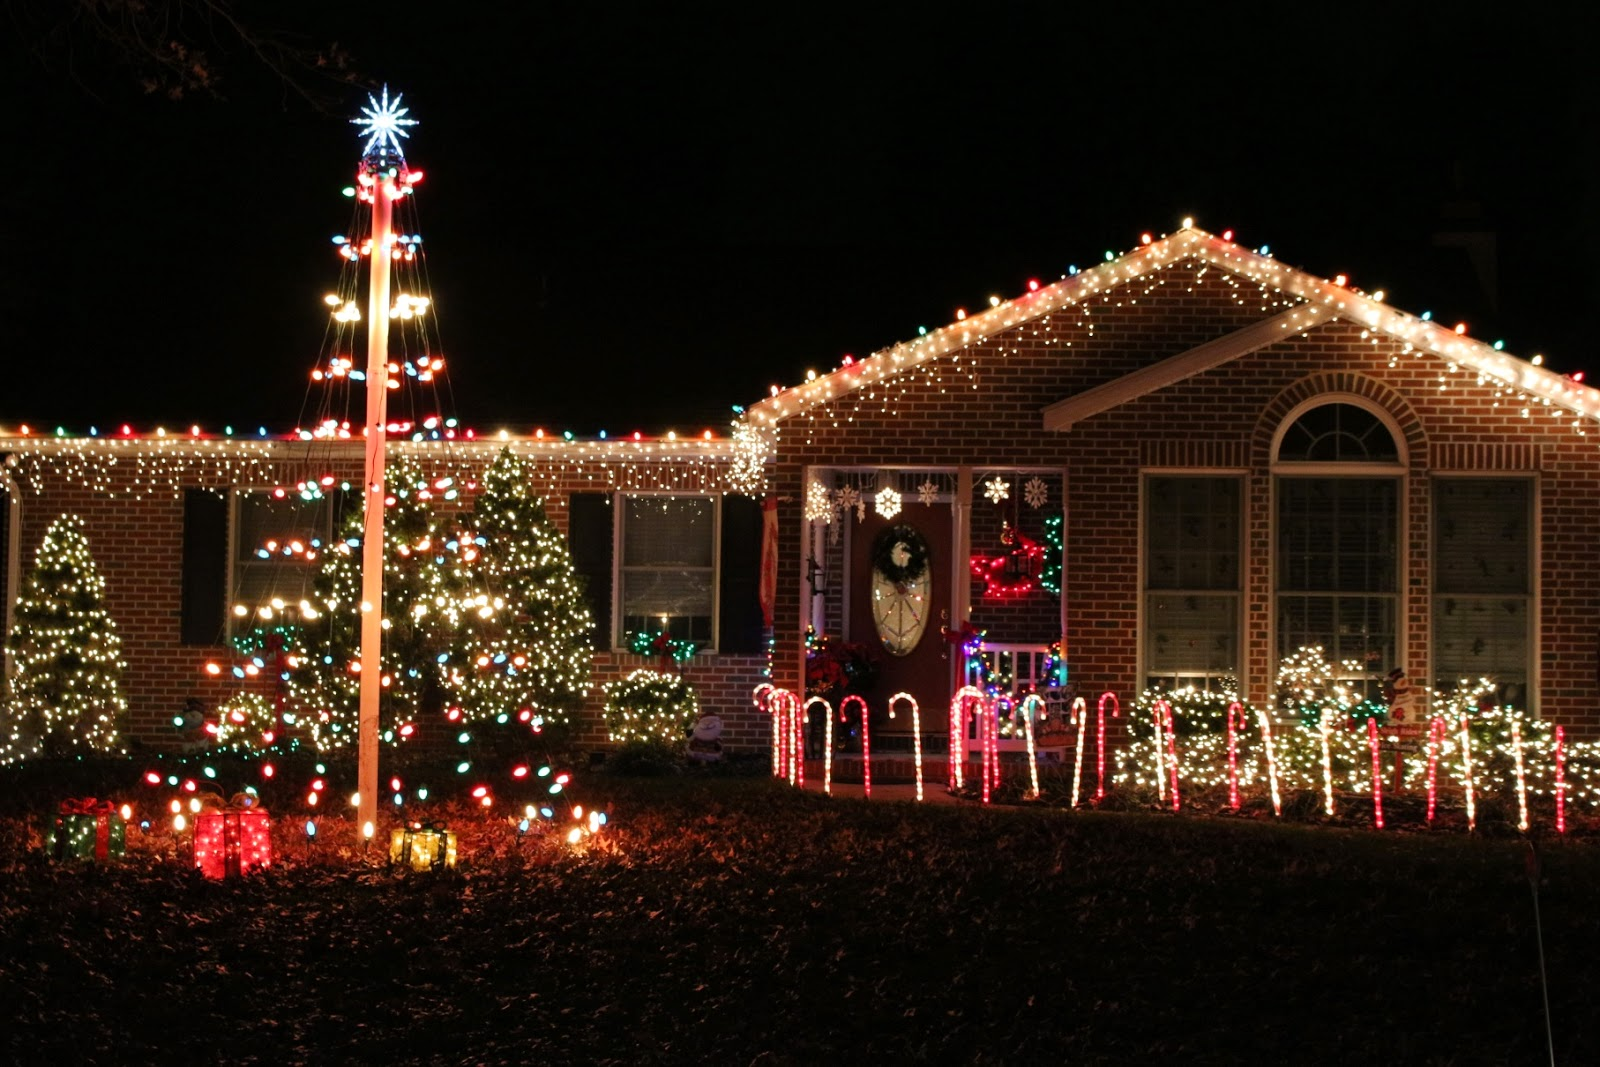 House decorated with Outdoor Christmas lights